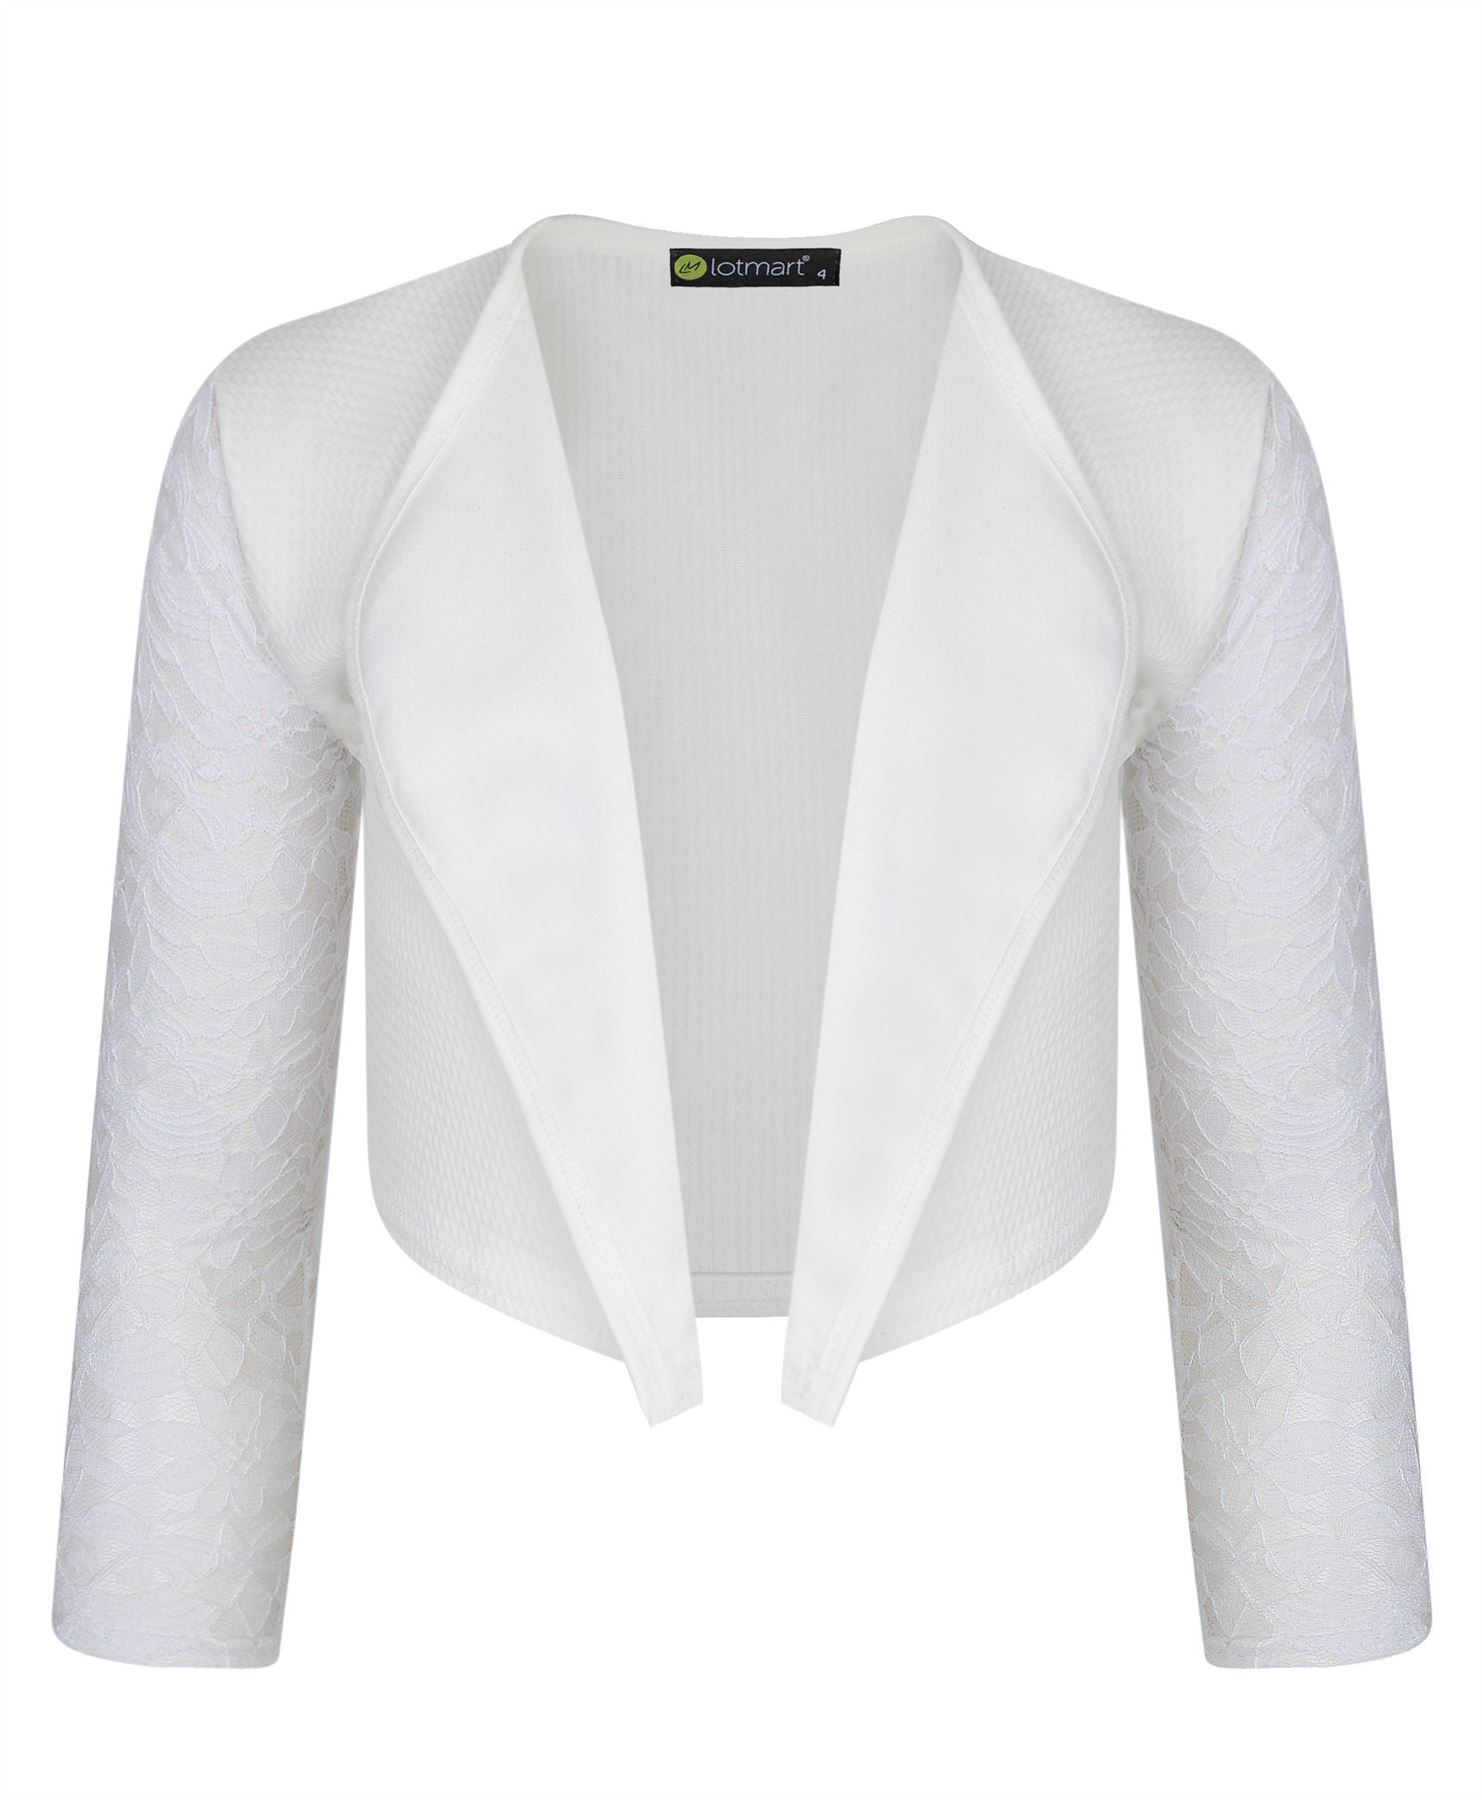 A lovely white bolero jacket for your little girl by Kids Dream. It is a cropped top bolero with a swirl pattern. This bolero is designed to match with fabulous dresses or other clothing items.